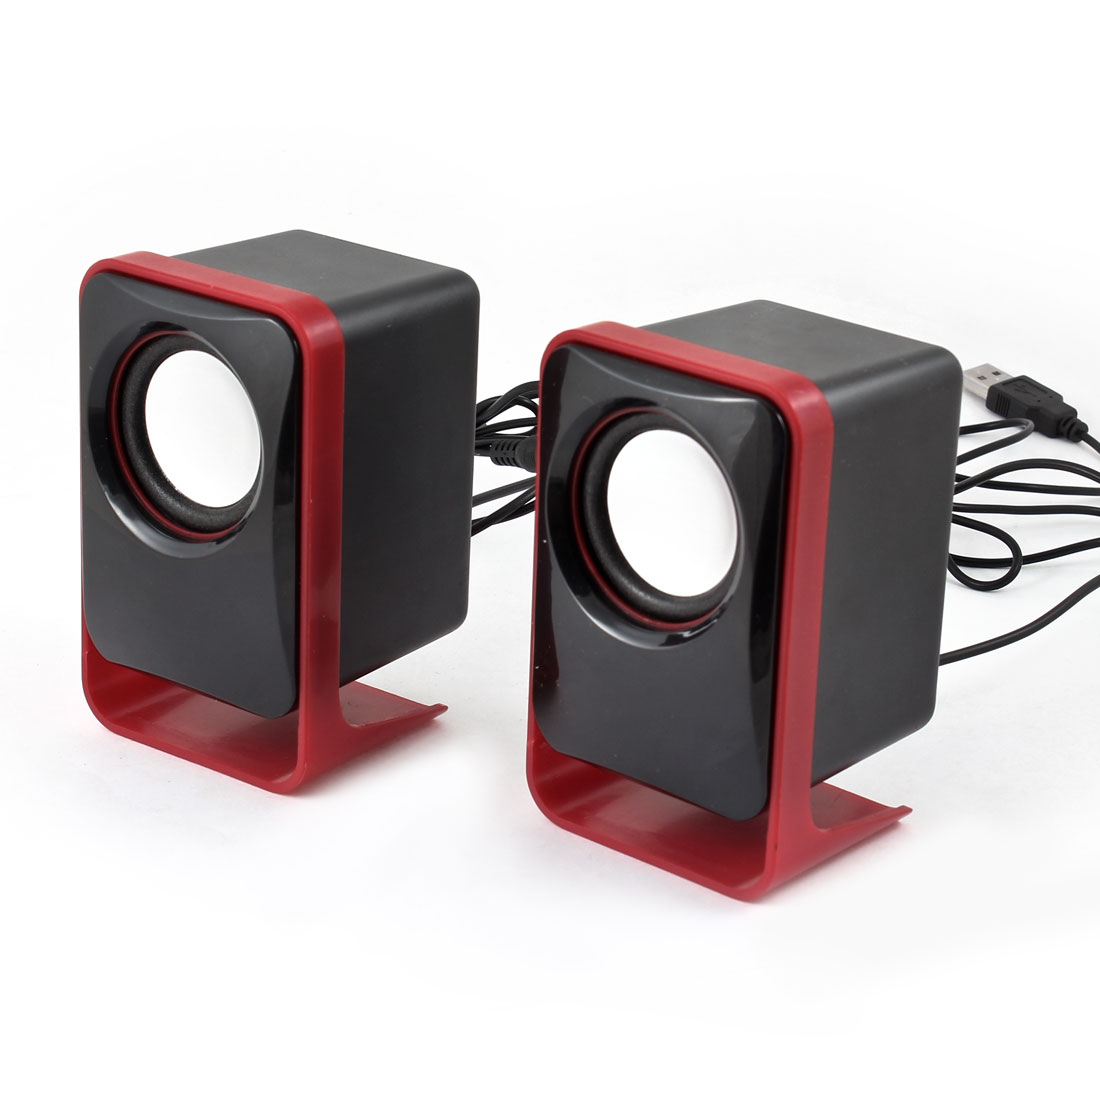 Laptop Volume Control Rectangle Shape 3.5mm Mini Speaker Red Pair